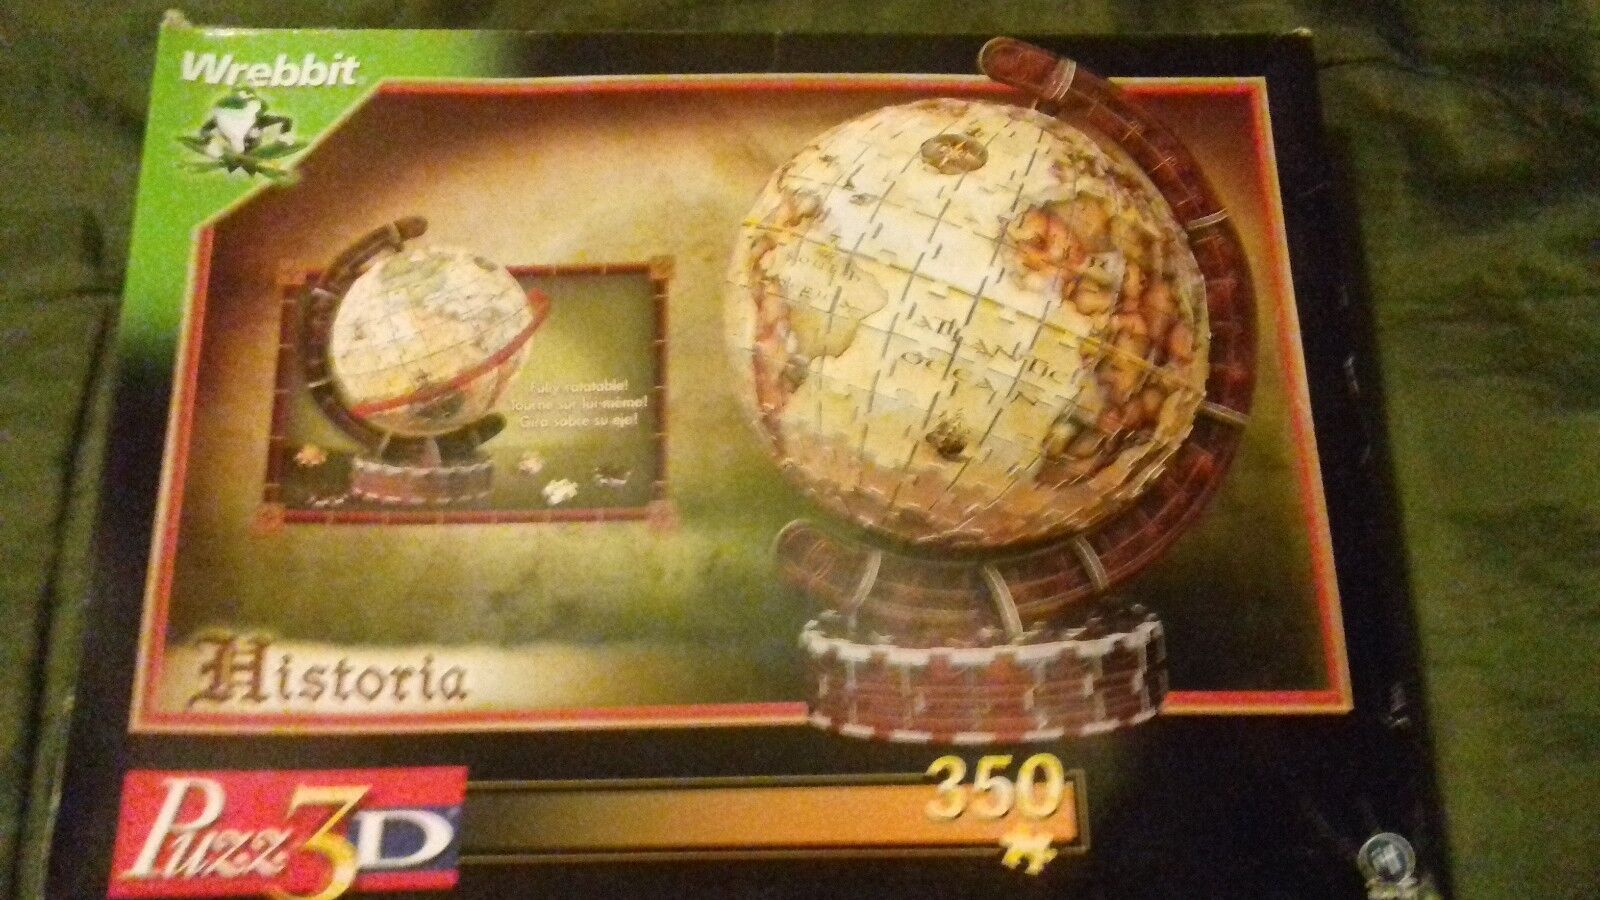 Puzz 3d historia globe very very very rare complete with box very good condition